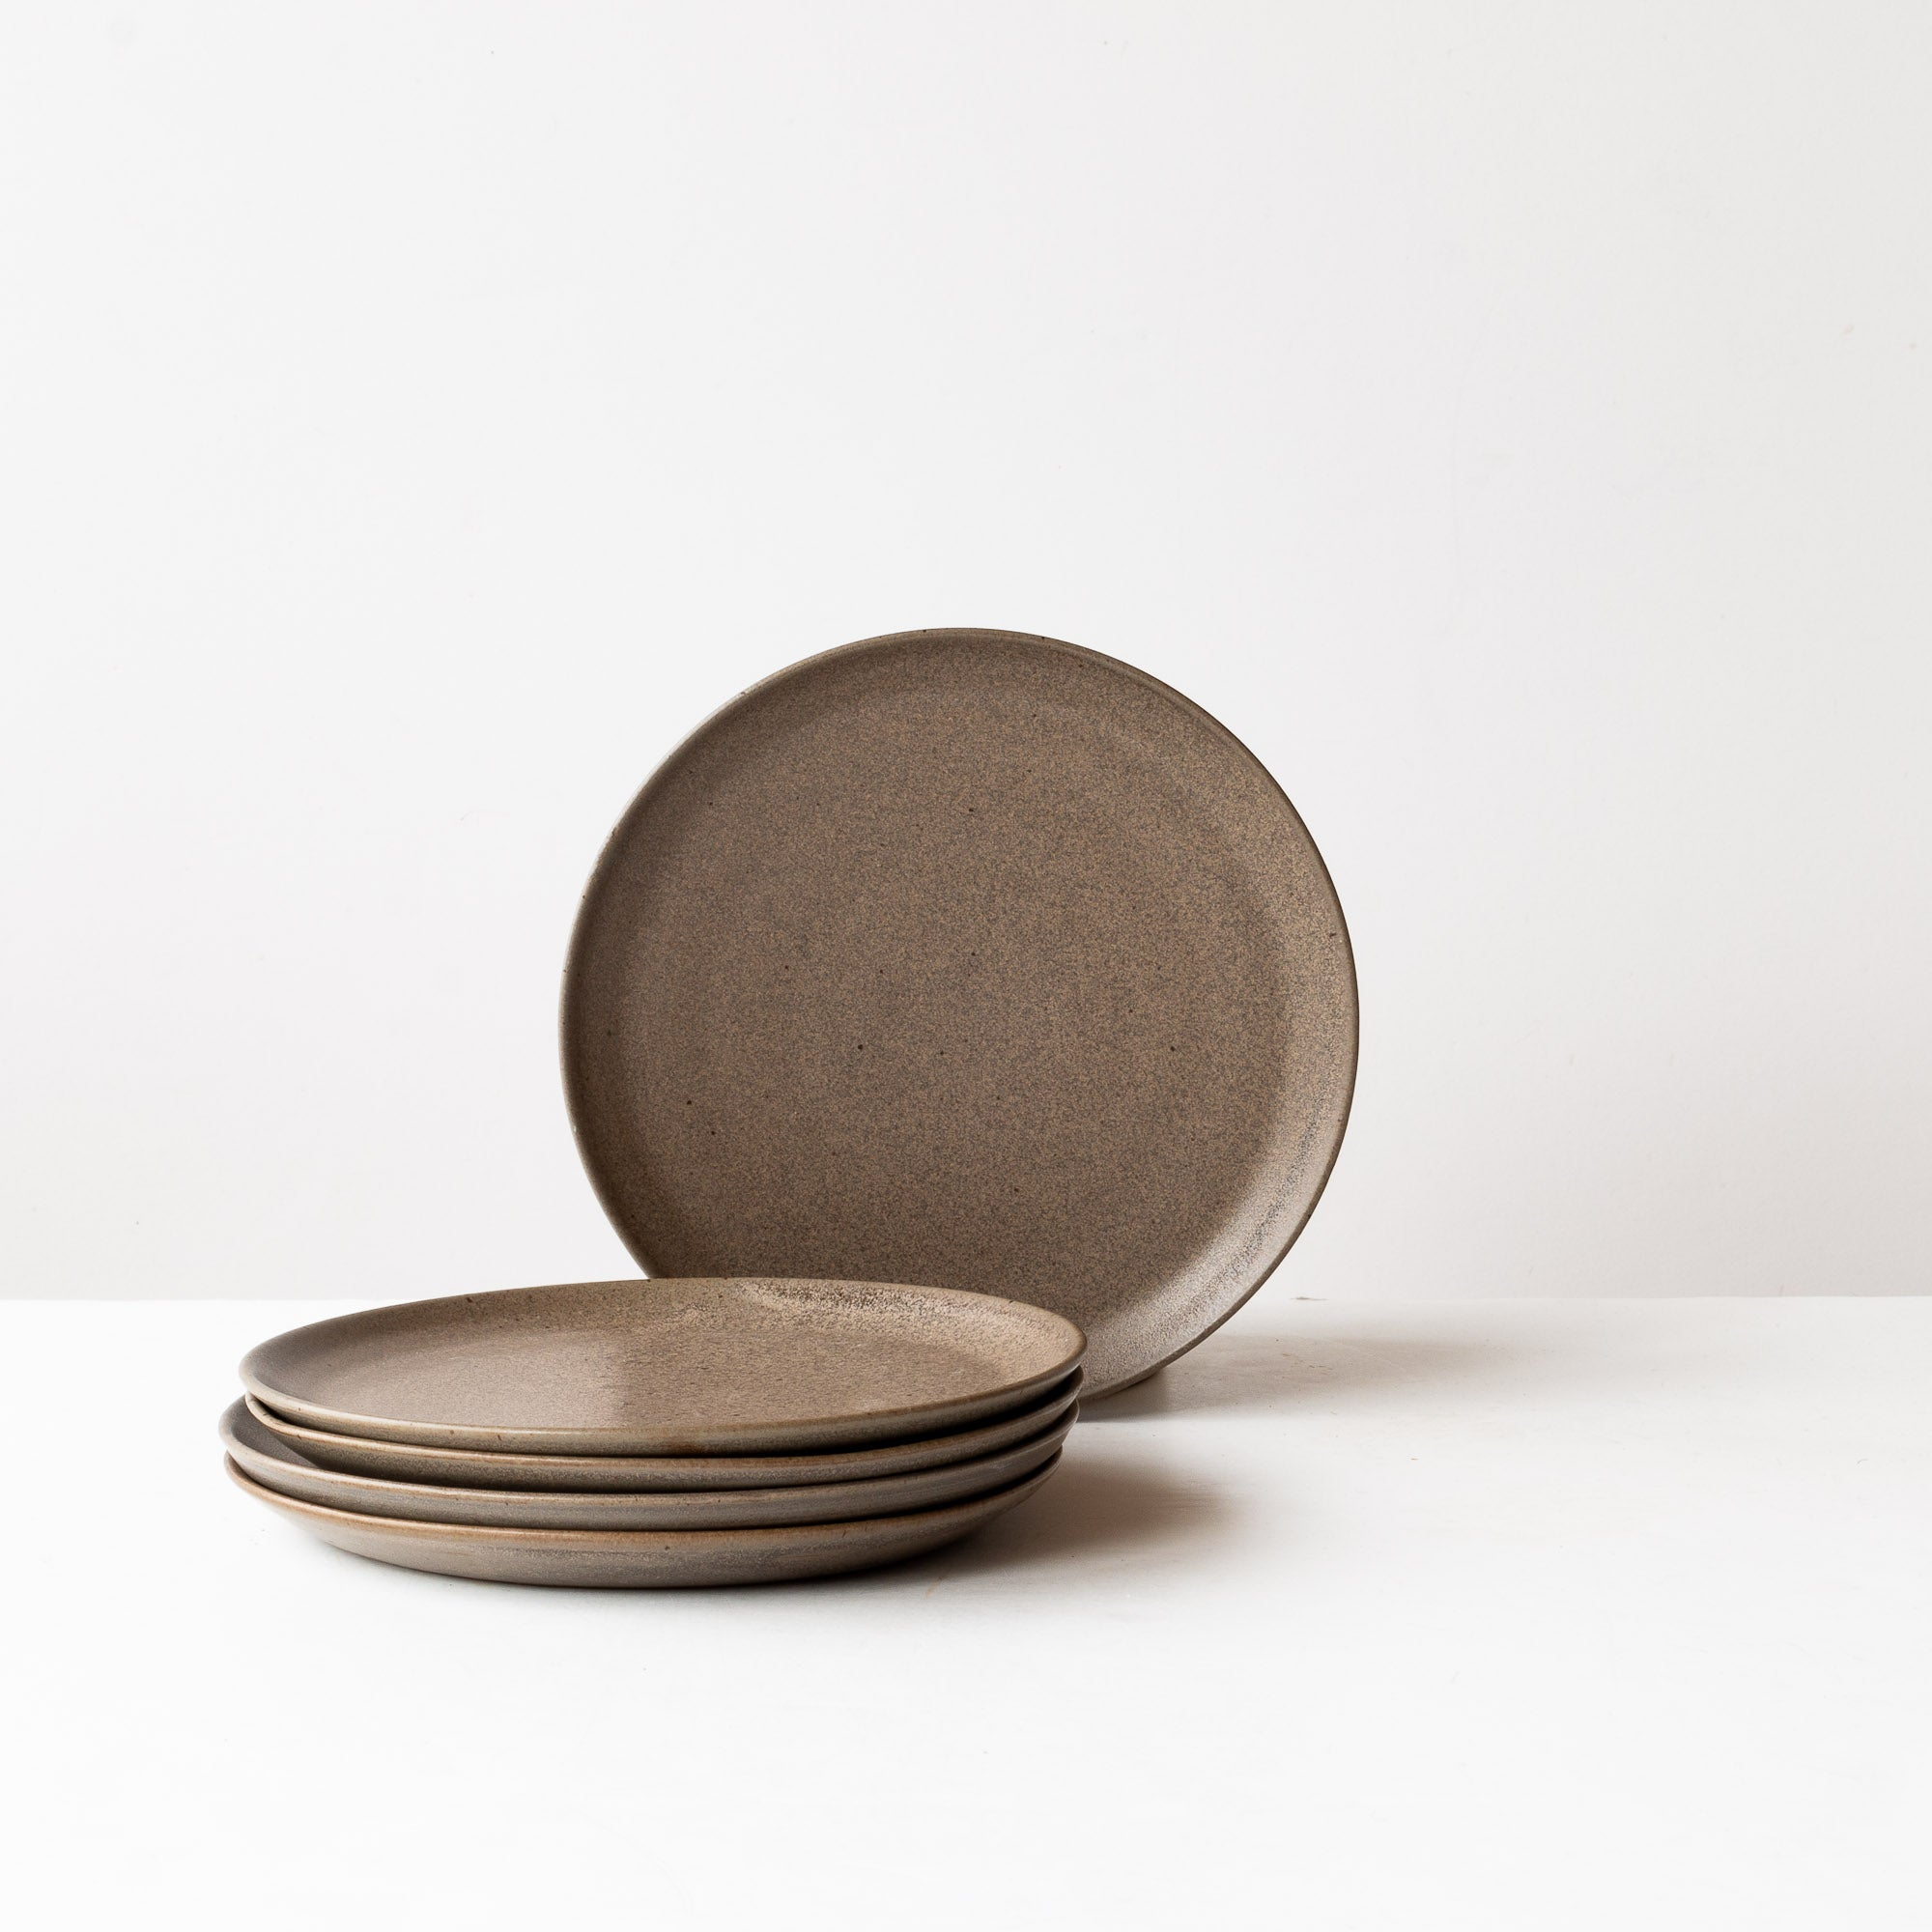 Matte Black Handmade Stoneware Small Plates - Sold by Chic & Basta